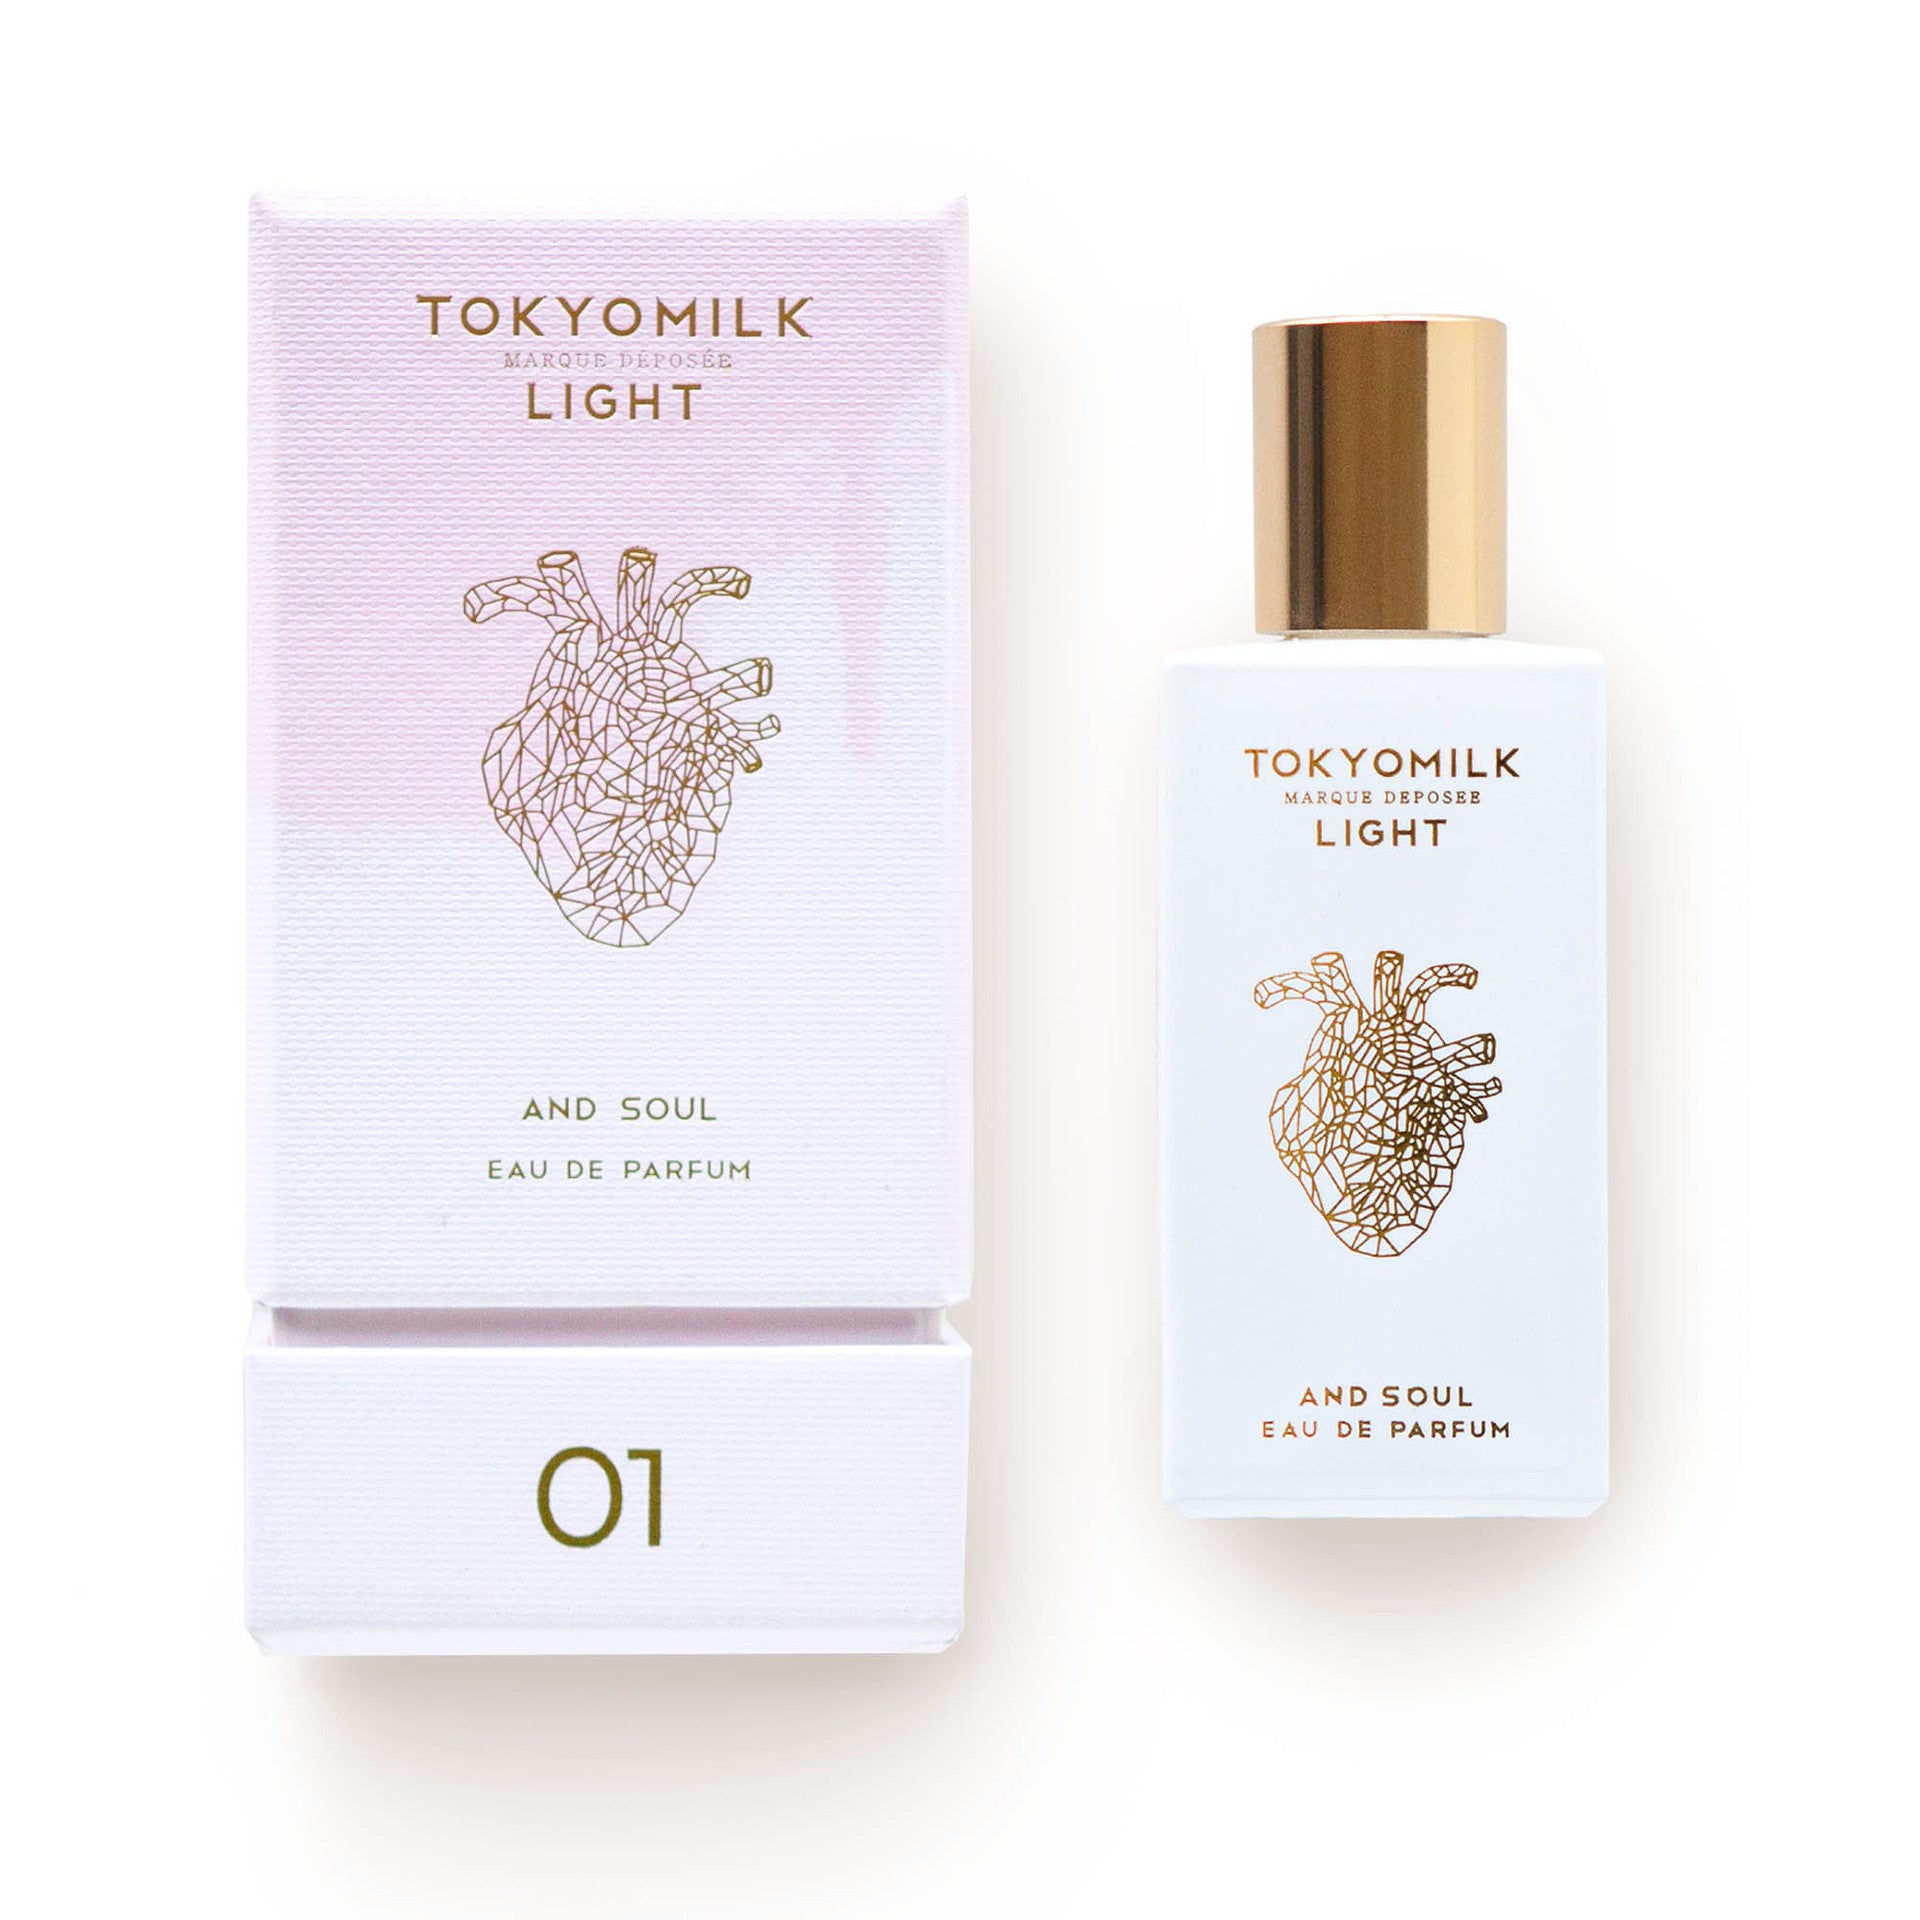 TOKYO MILK LIGHT PARFUM AND SOUL 47.3 ml